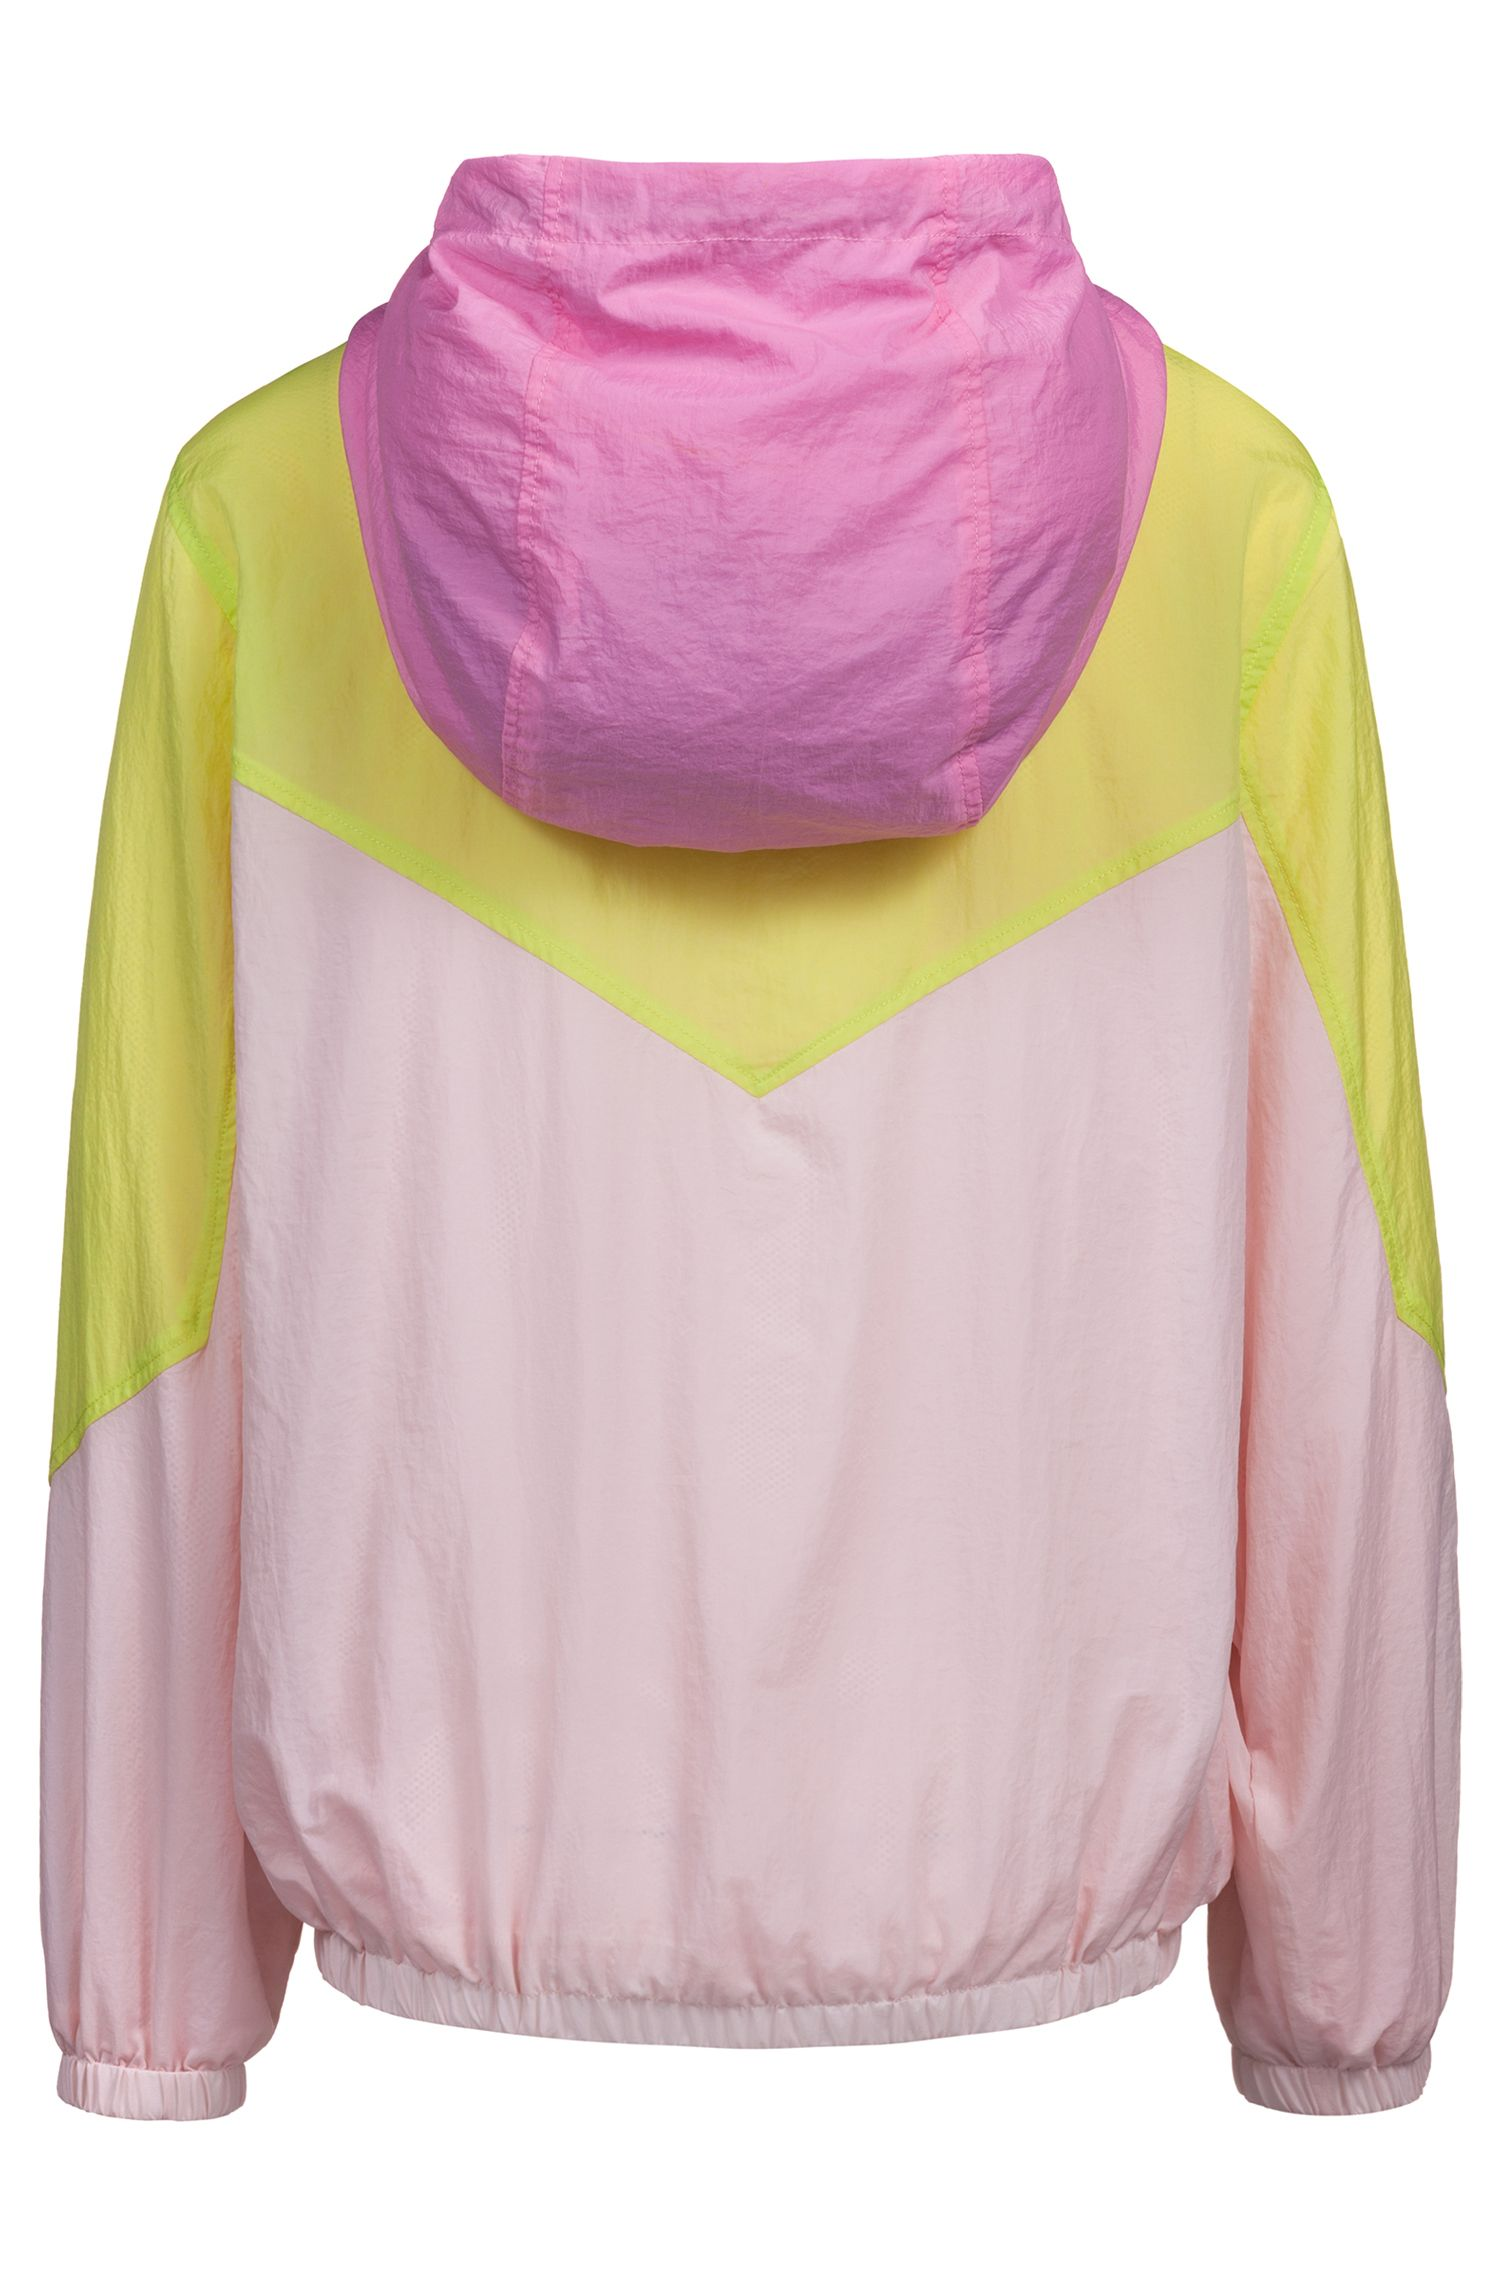 Oversized-fit jack met capuchon en korte ritssluiting in colourblocking, Pink